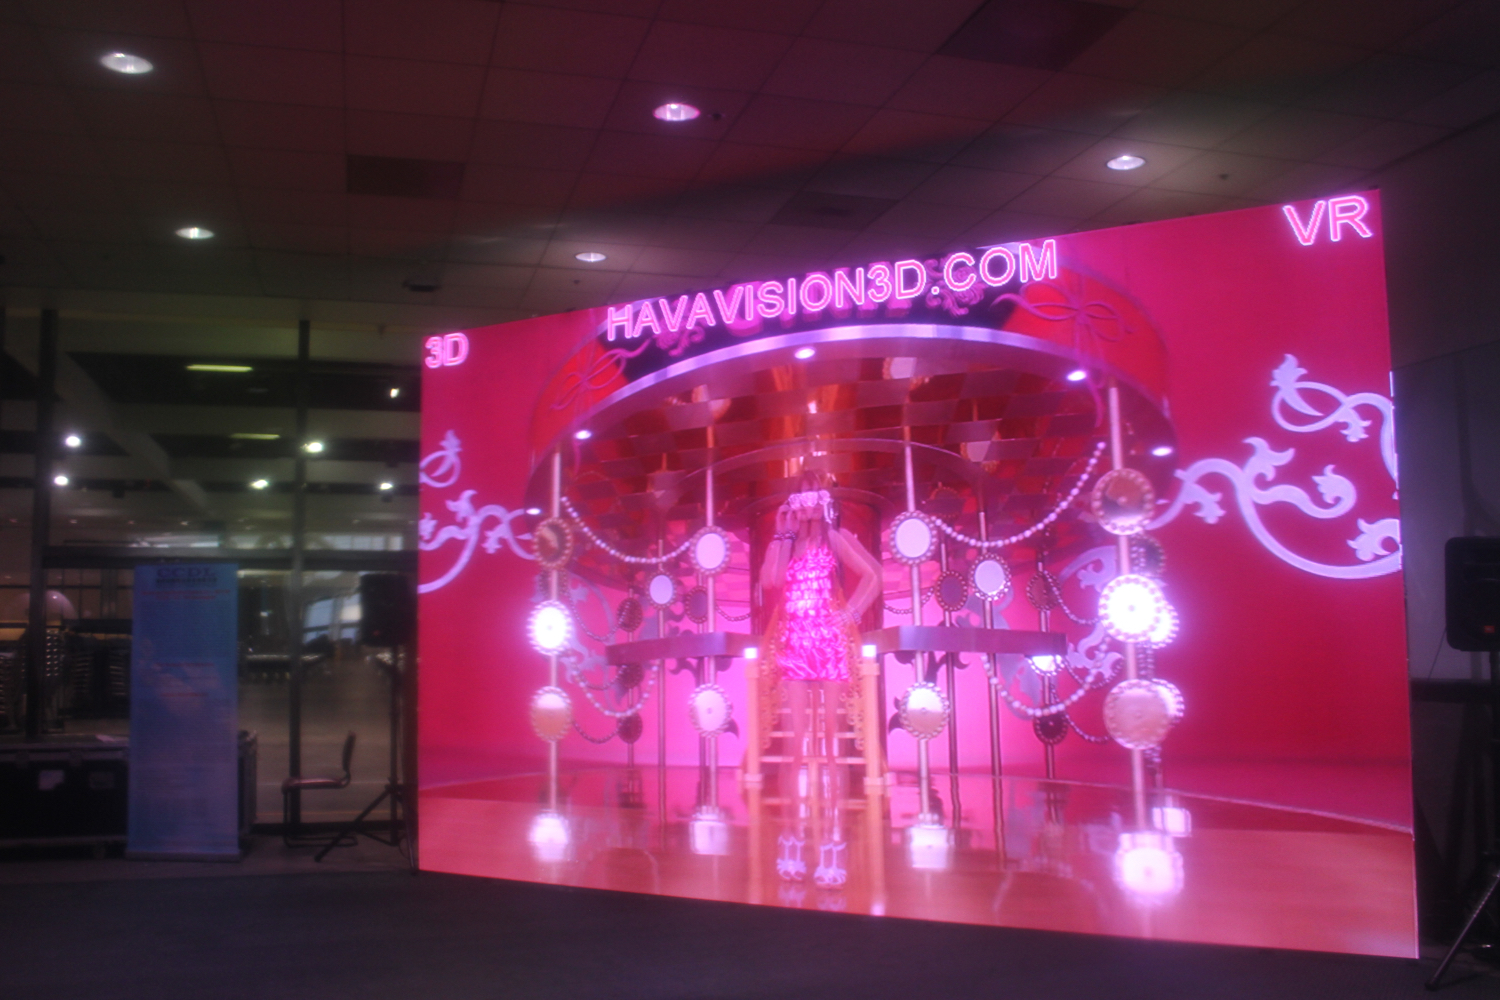 This was amazing, very smooth 3D projections by  Havavision . They handed out 3D glasses for an immersive mall experence.